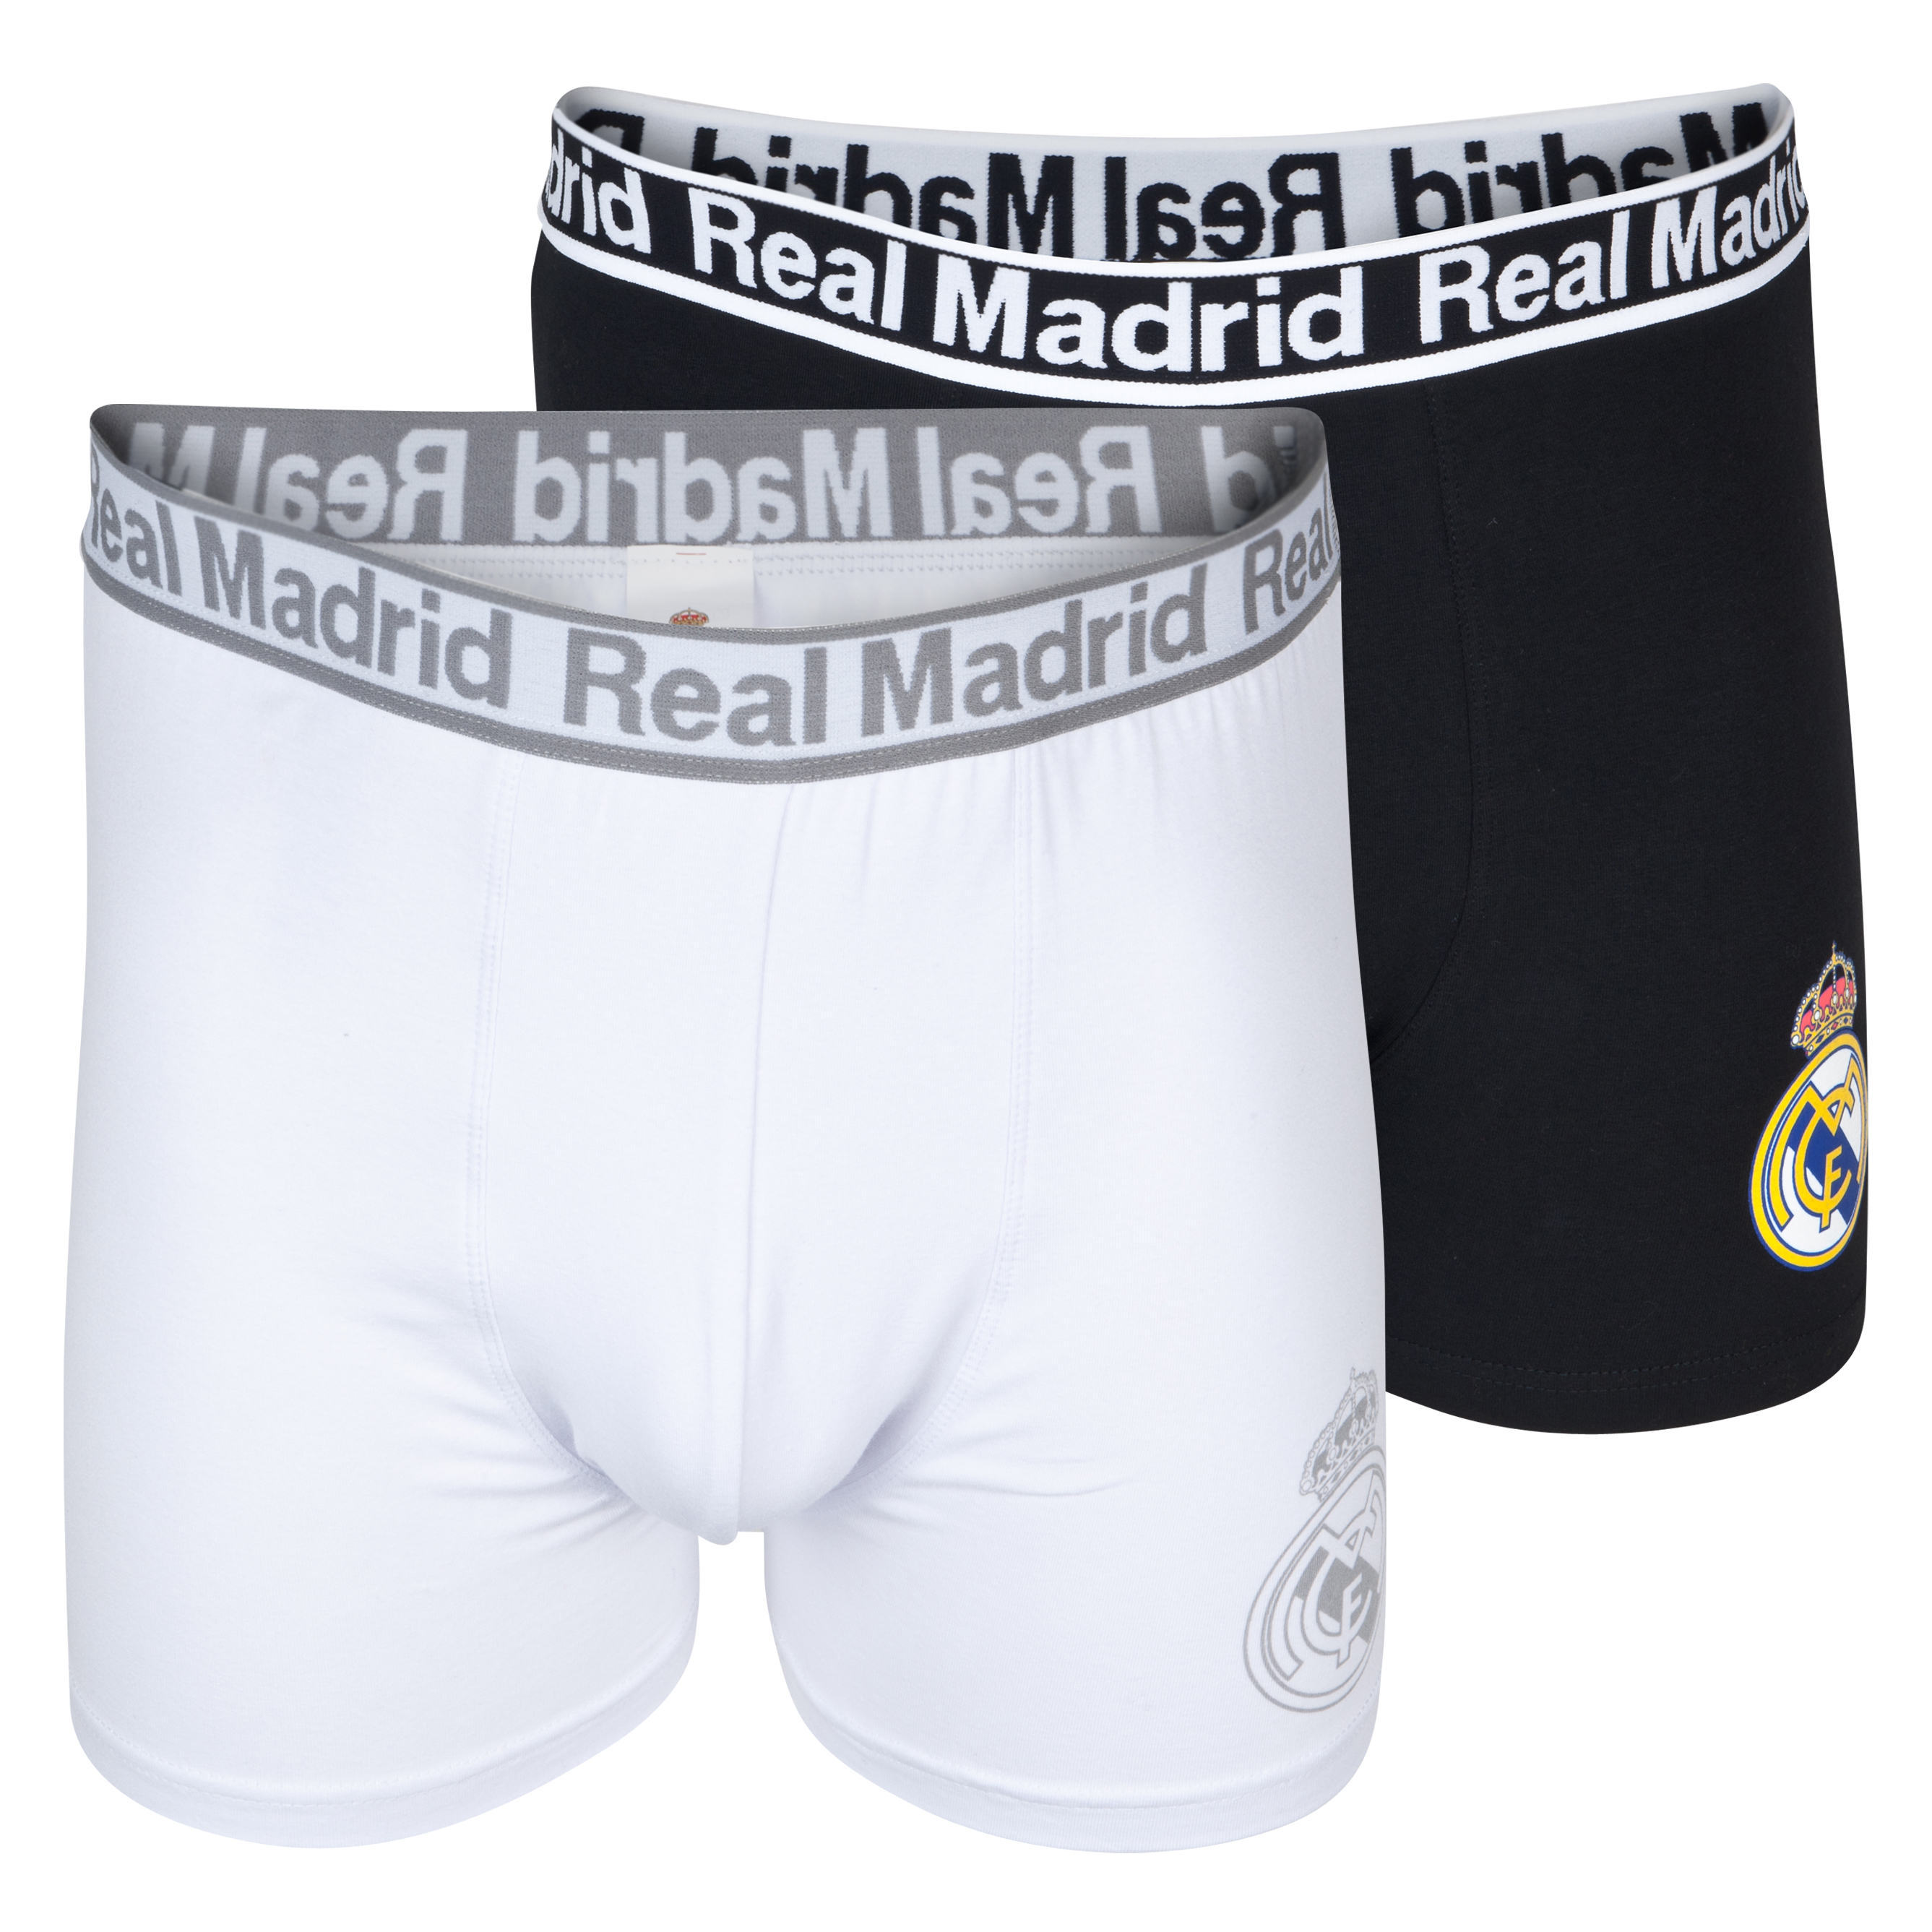 Real Madrid 2 PK Boxer Shorts - Mens Black